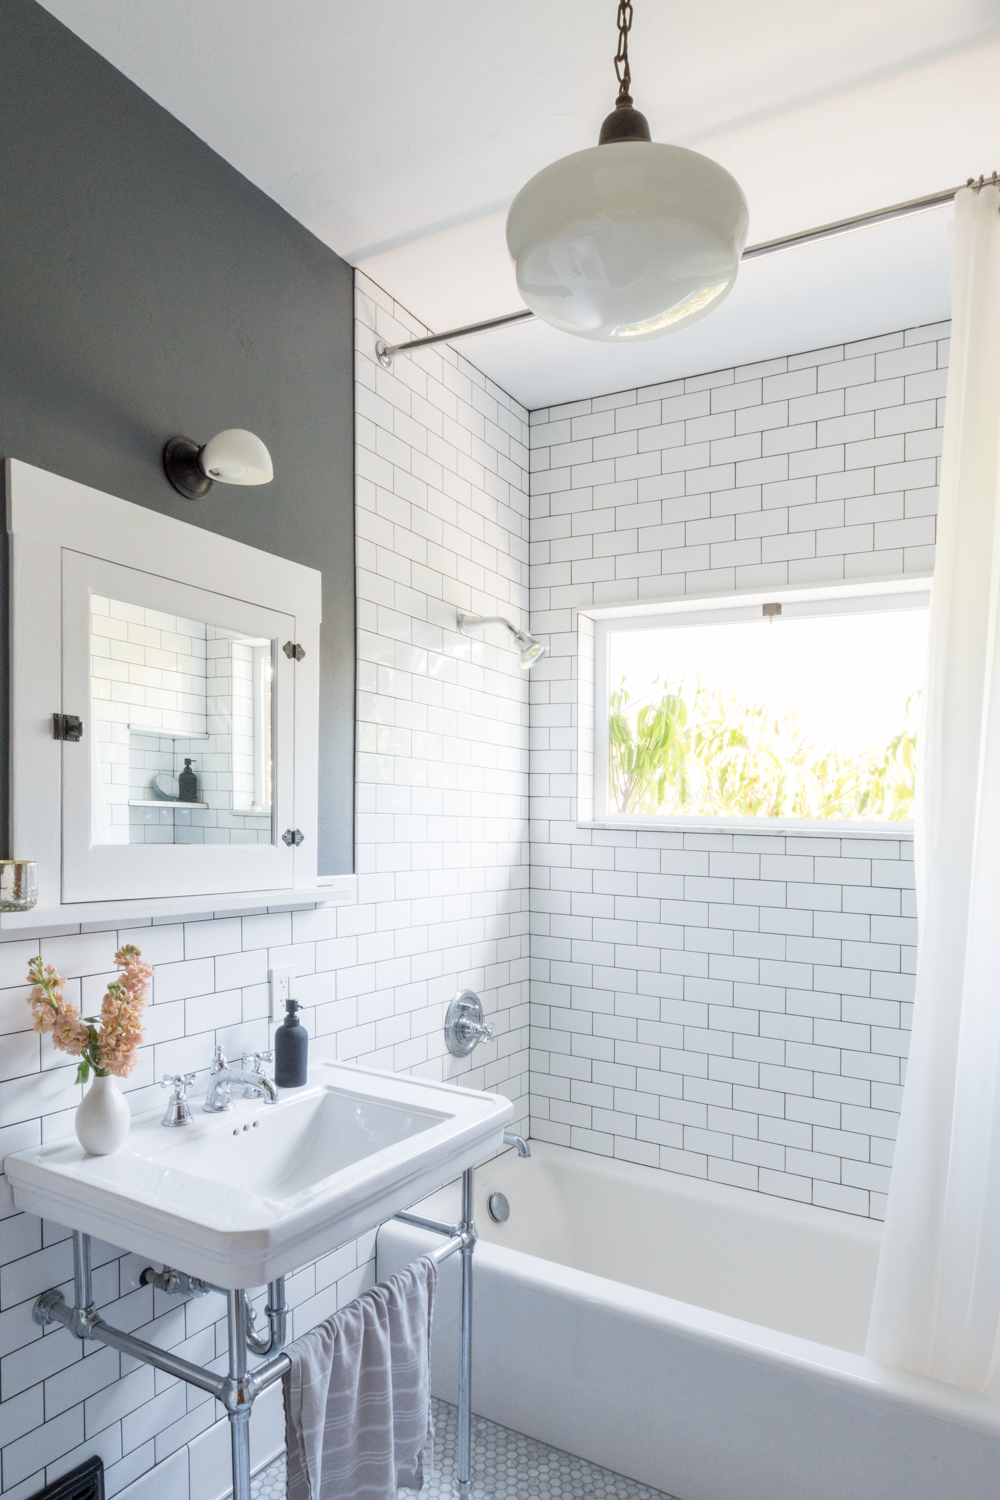 Subway Tile in vintage bathroom